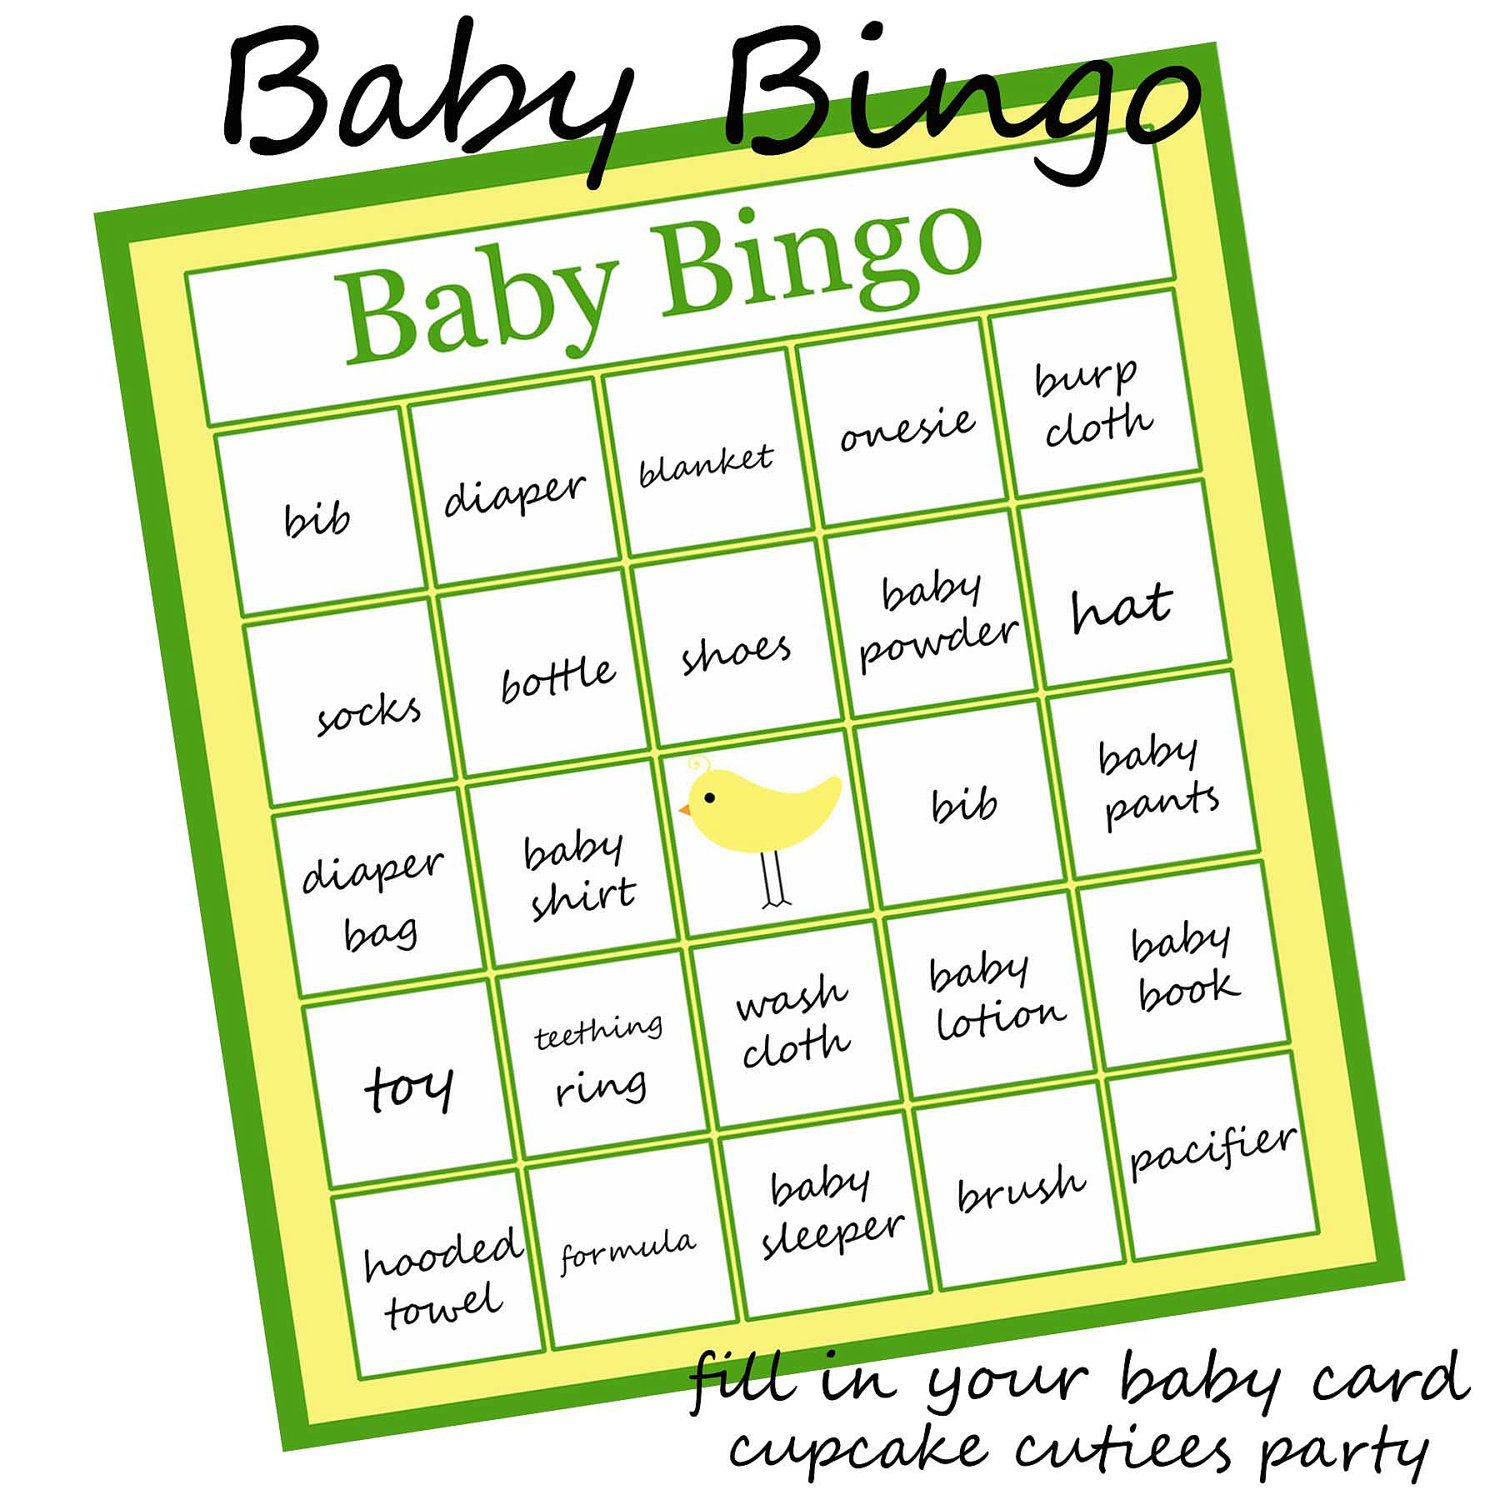 Baby Bingo Party Game For Baby Shower Printable U Print 3 50 Via Etsy